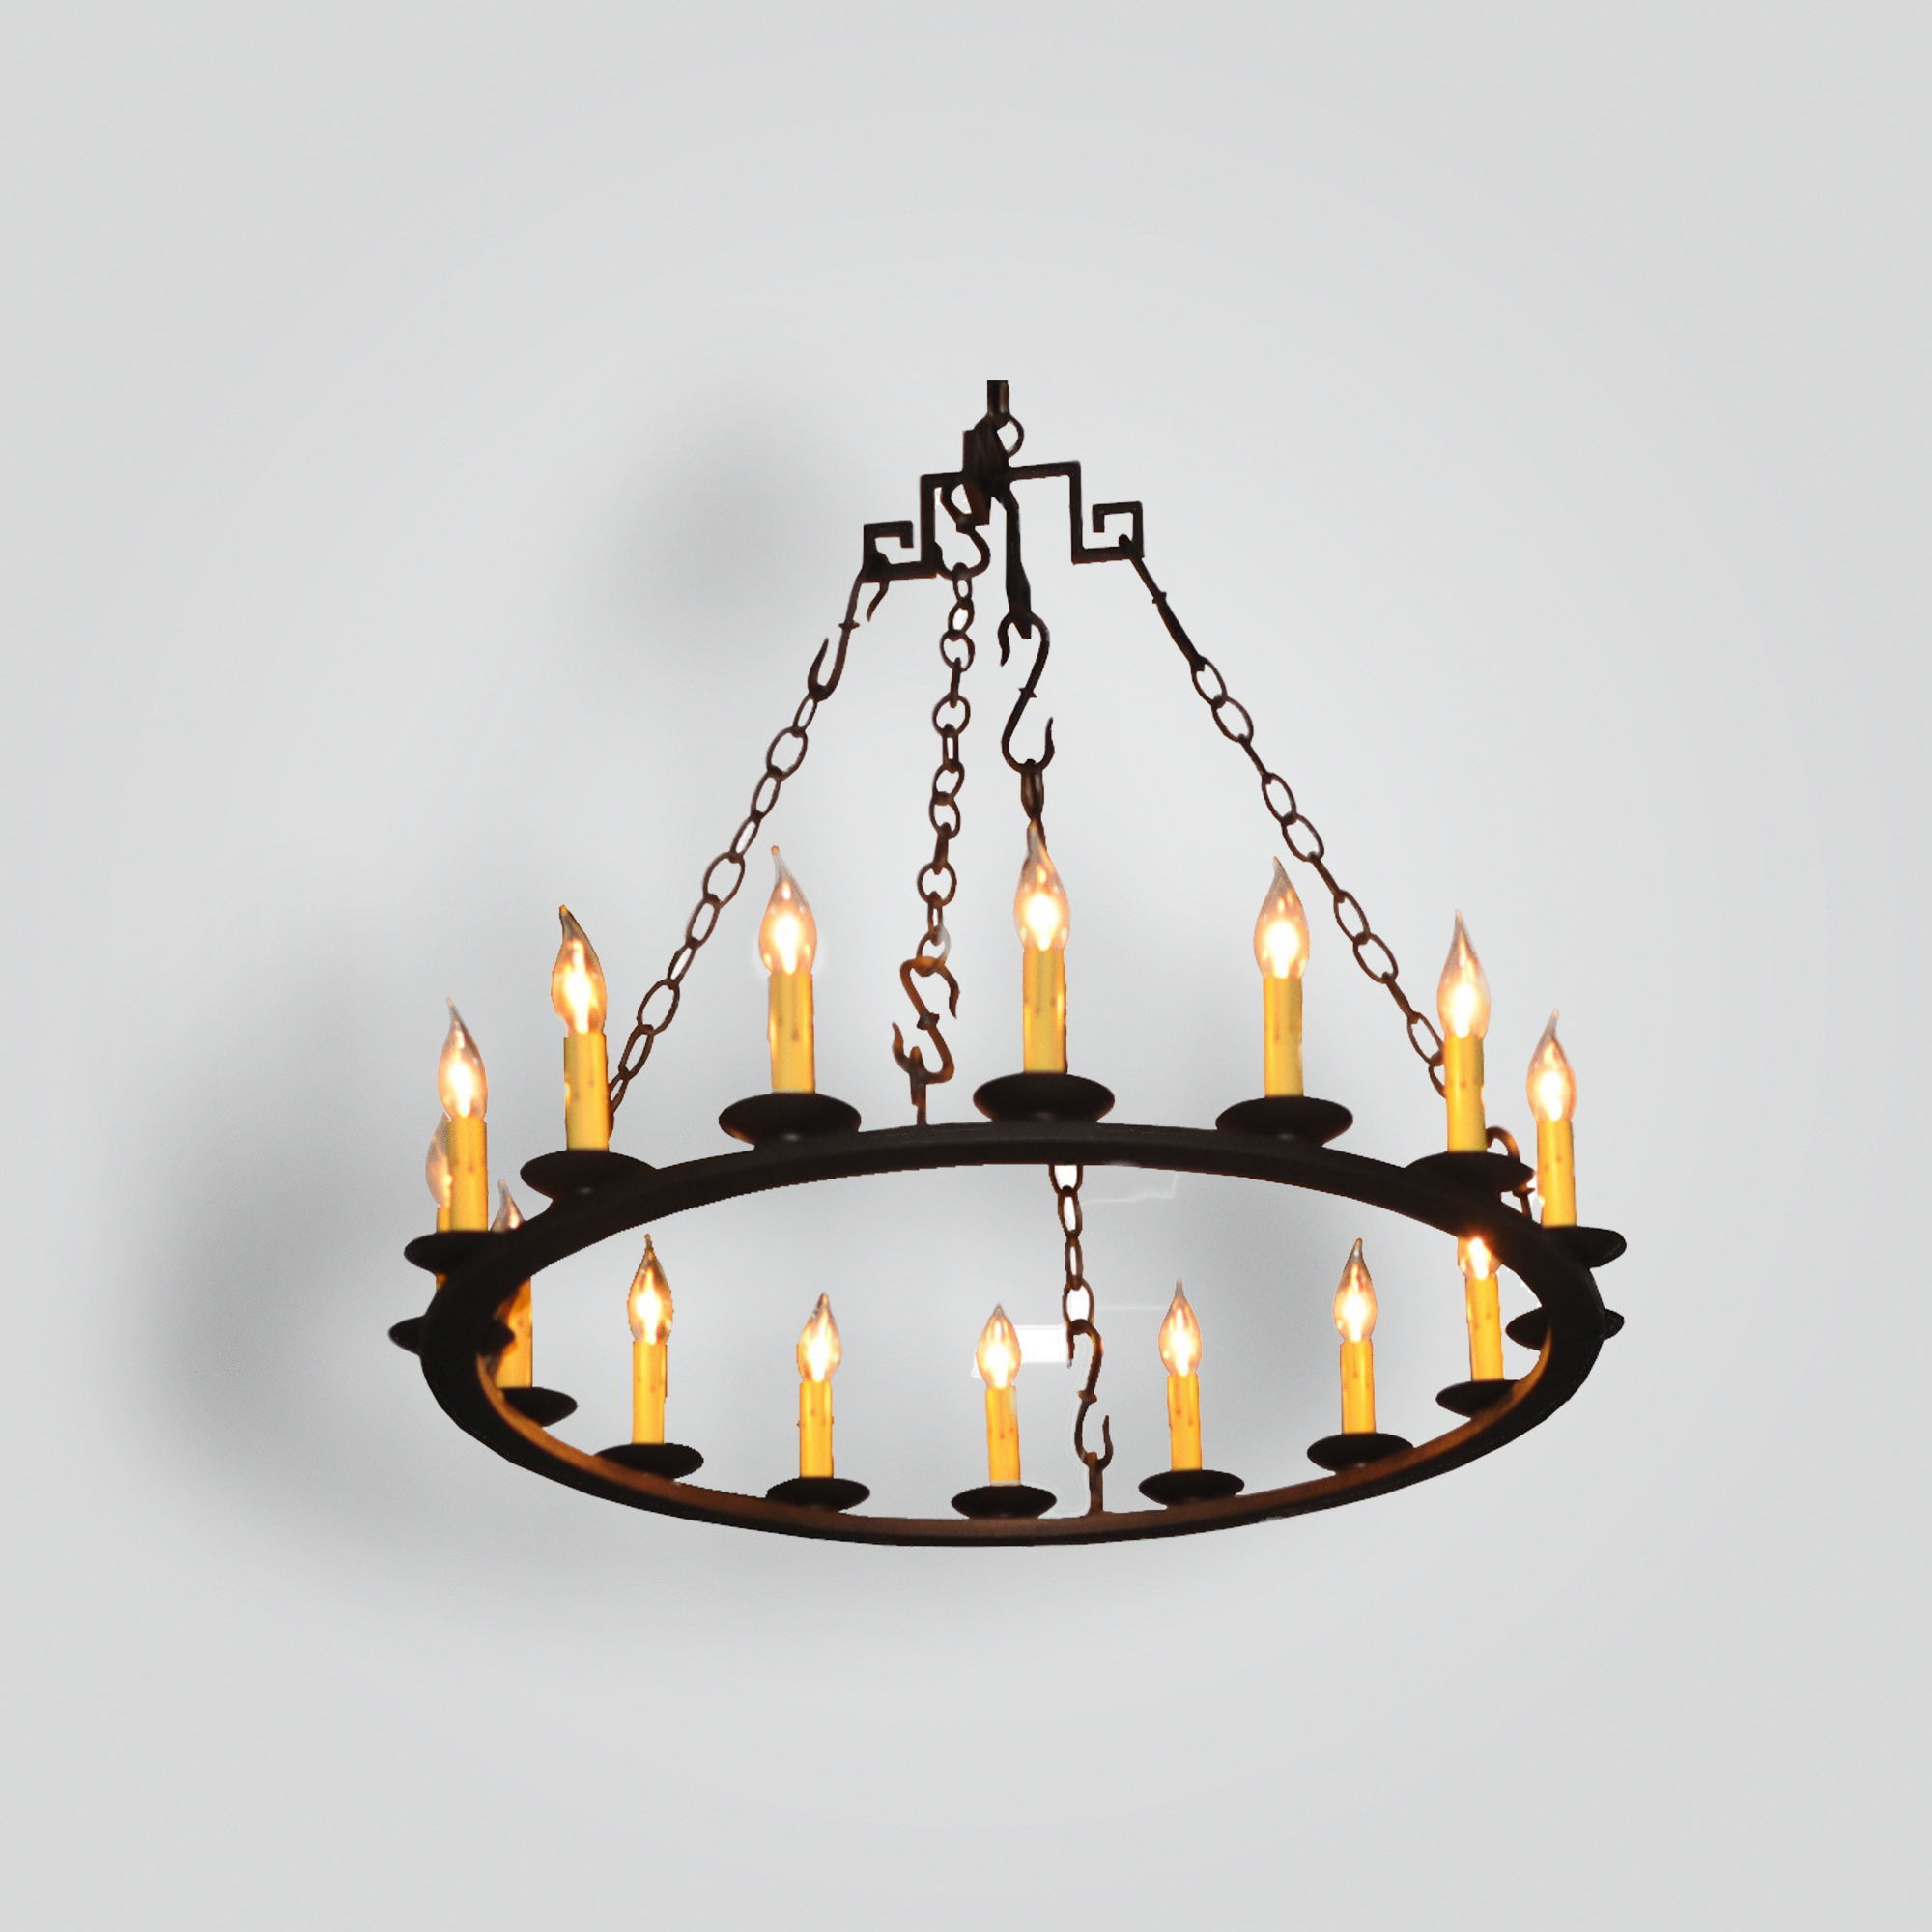 7024-mb12-ir-h-fr-iron-ring-chandelier-candle – ADG Lighting Collection